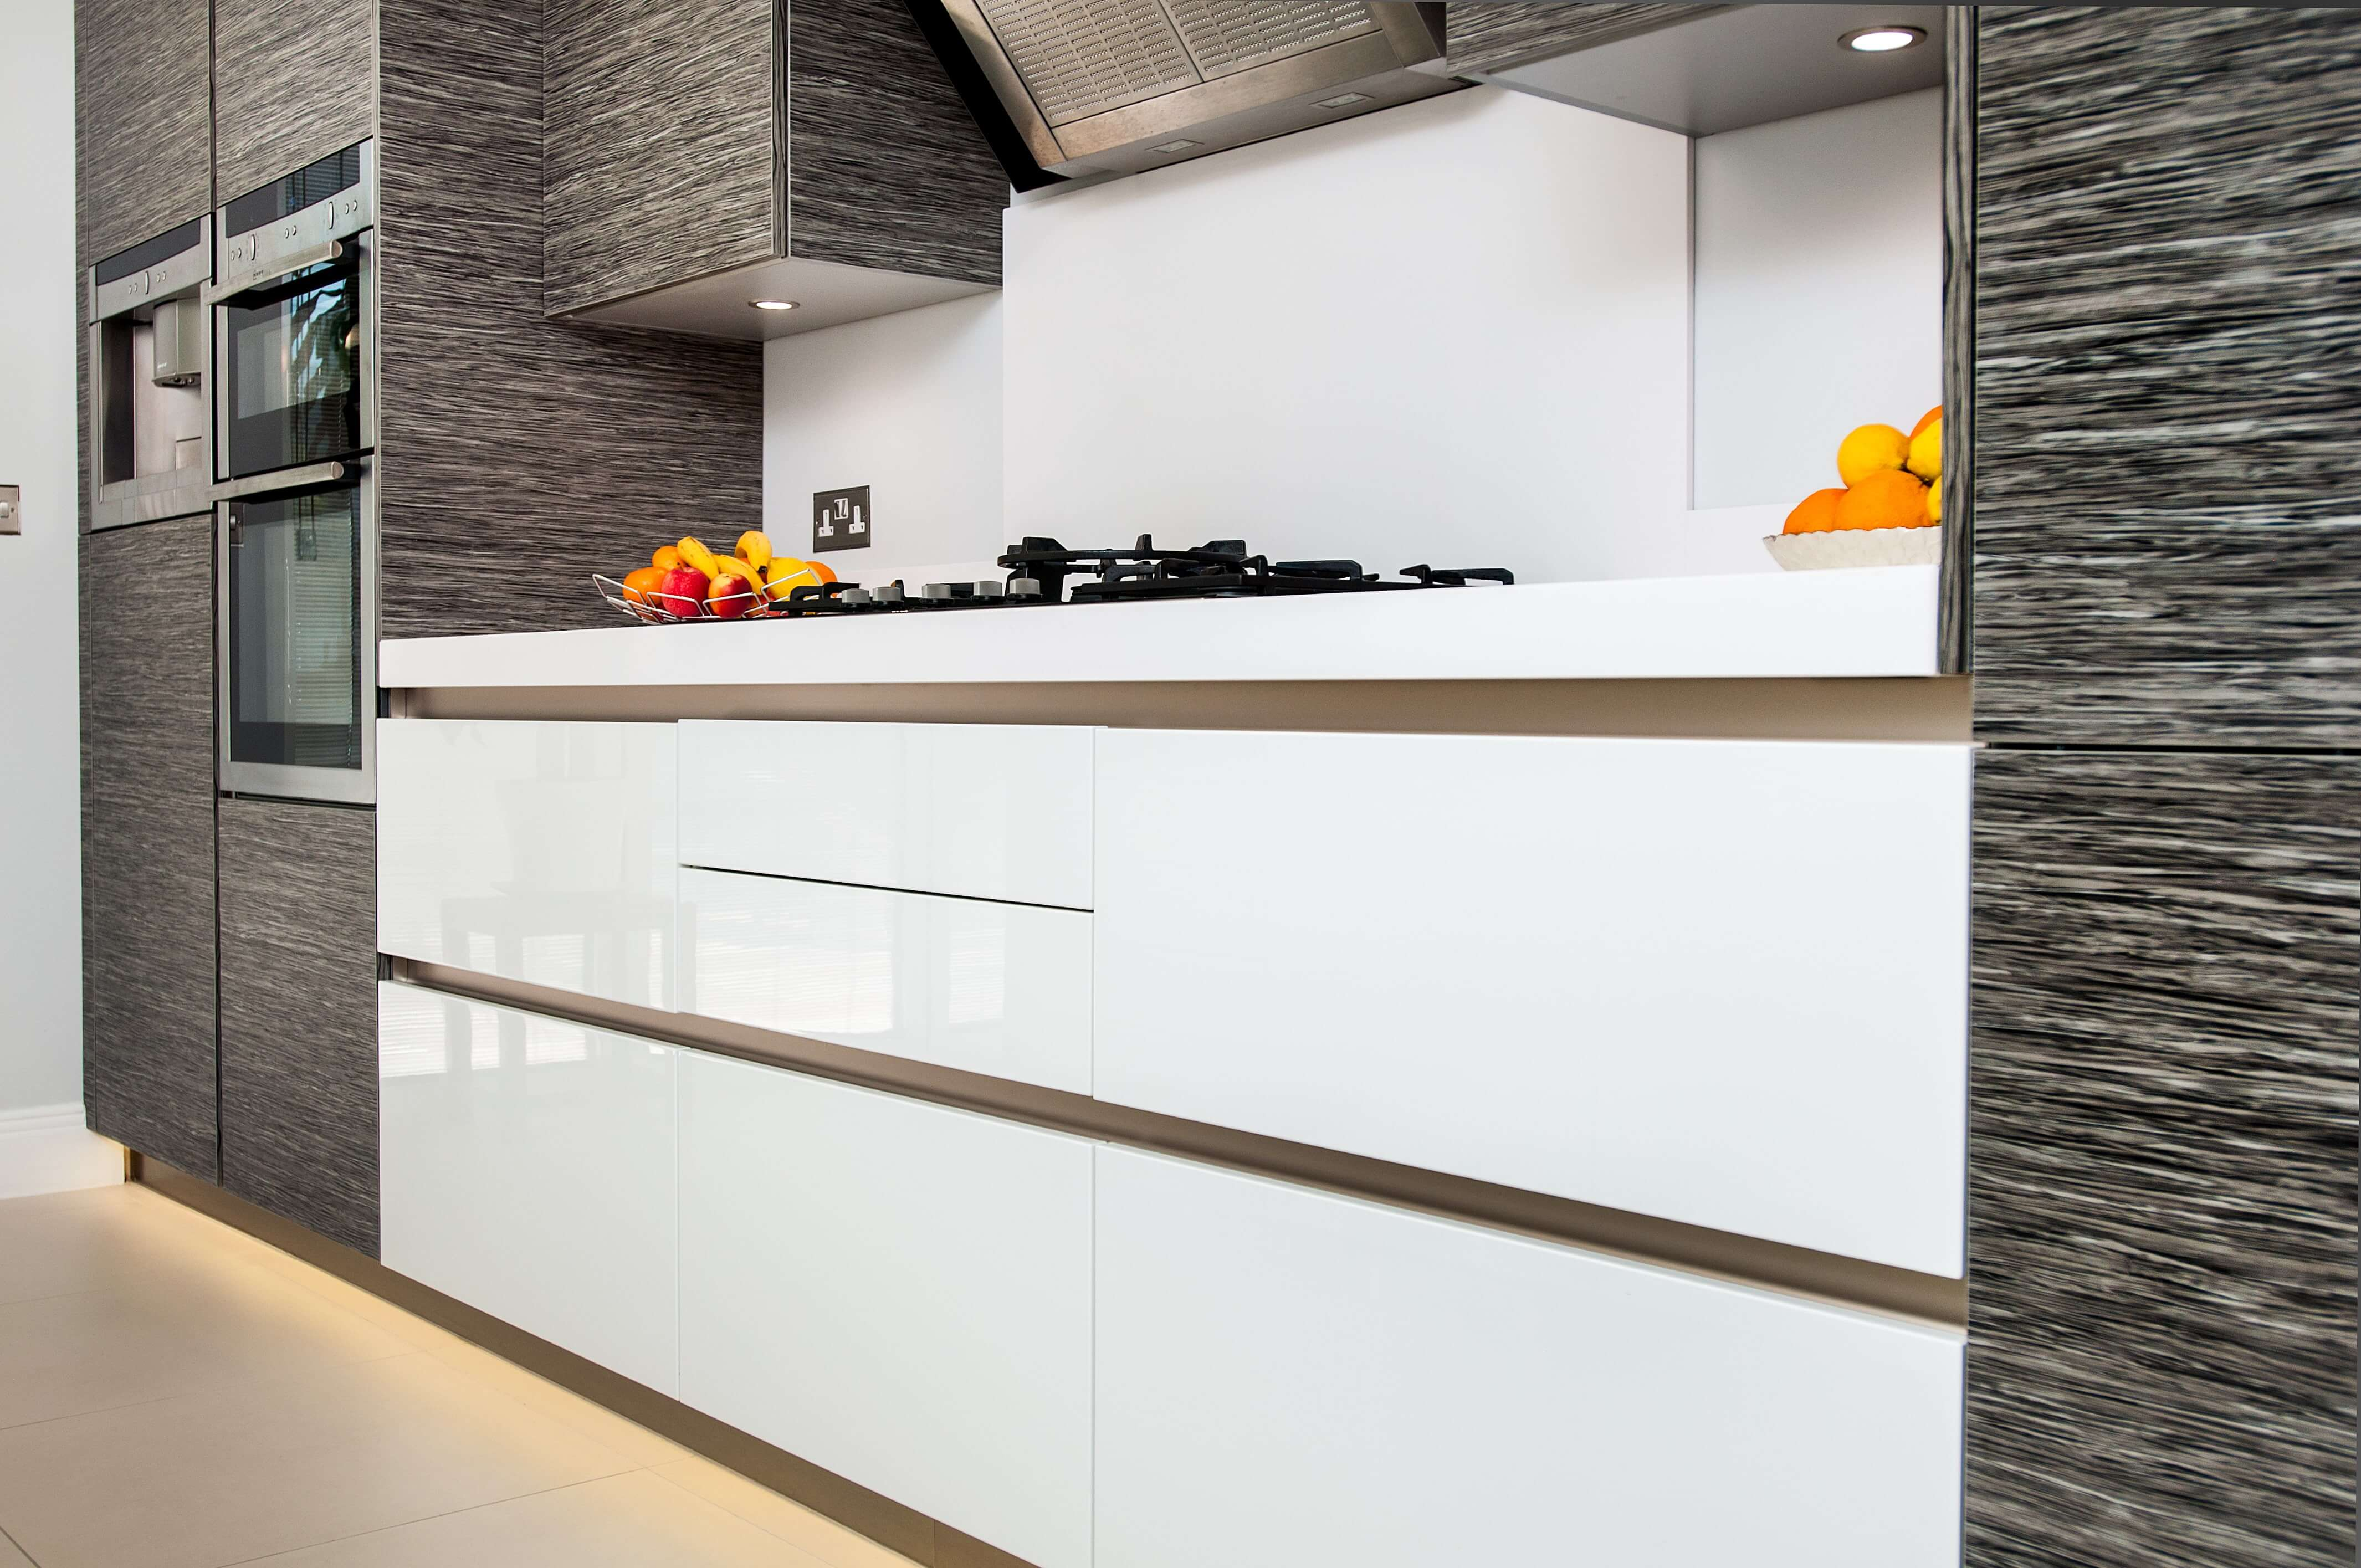 Kitchen Cabinet Doors: Choosing the Right Finish